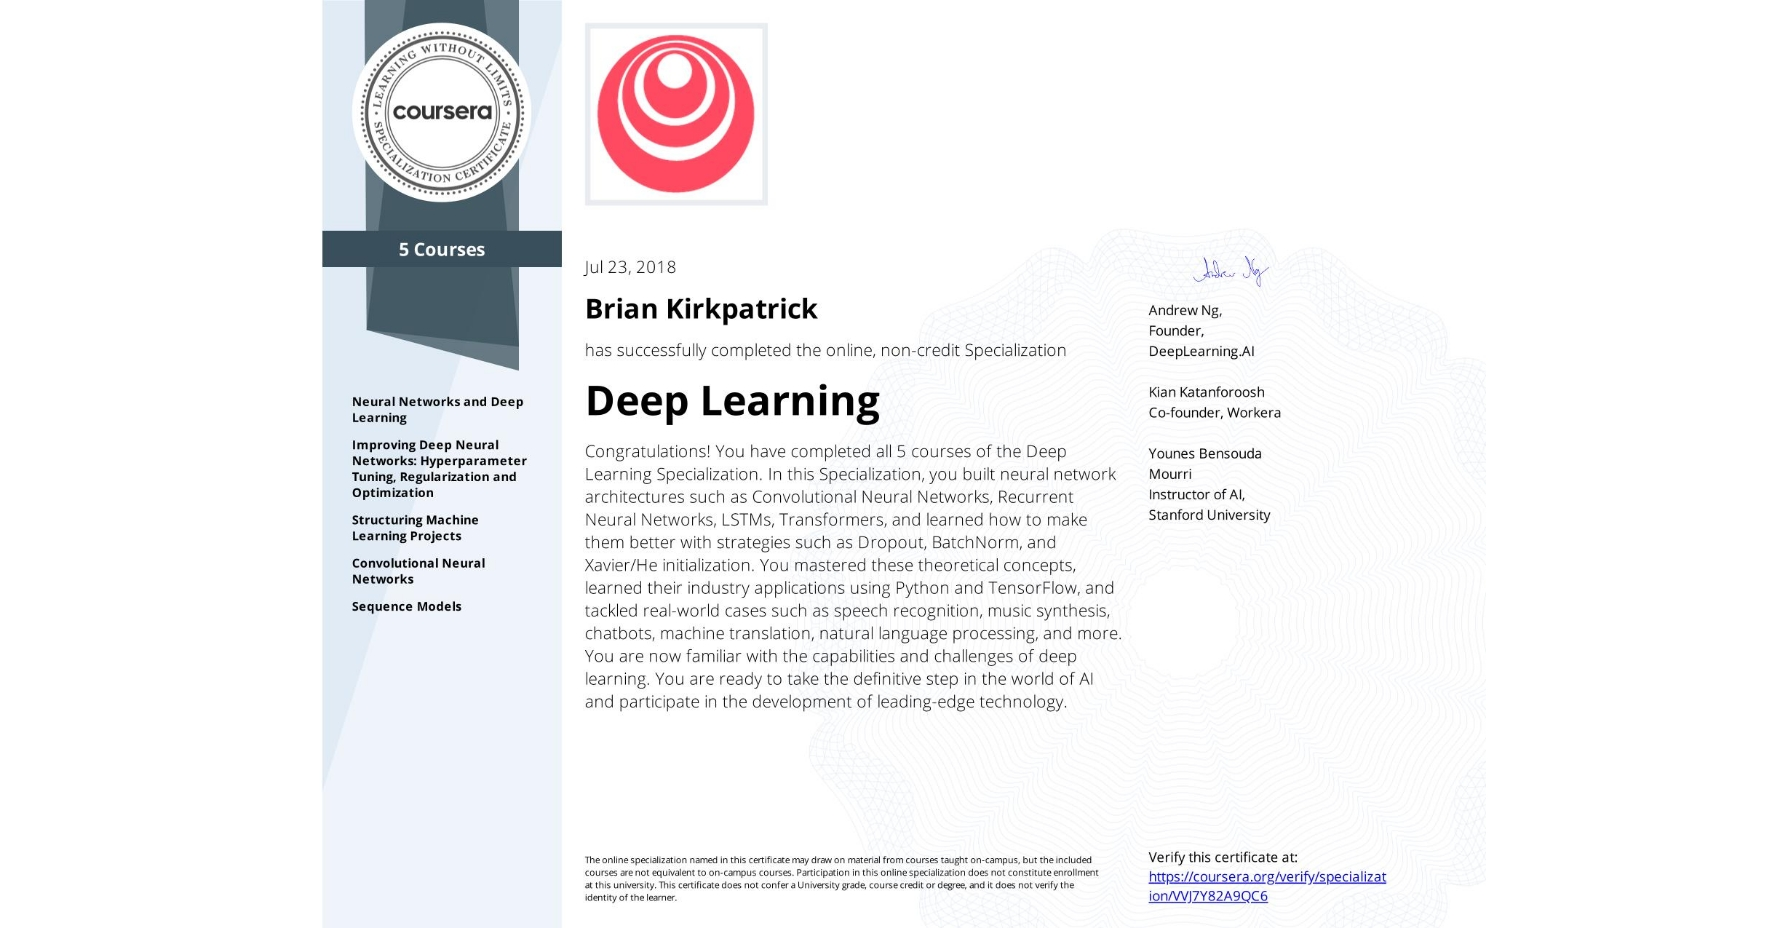 View certificate for Brian Kirkpatrick, Deep Learning, offered through Coursera. The Deep Learning Specialization is designed to prepare learners to participate in the development of cutting-edge AI technology, and to understand the capability, the challenges, and the consequences of the rise of deep learning. Through five interconnected courses, learners develop a profound knowledge of the hottest AI algorithms, mastering deep learning from its foundations (neural networks) to its industry applications (Computer Vision, Natural Language Processing, Speech Recognition, etc.).